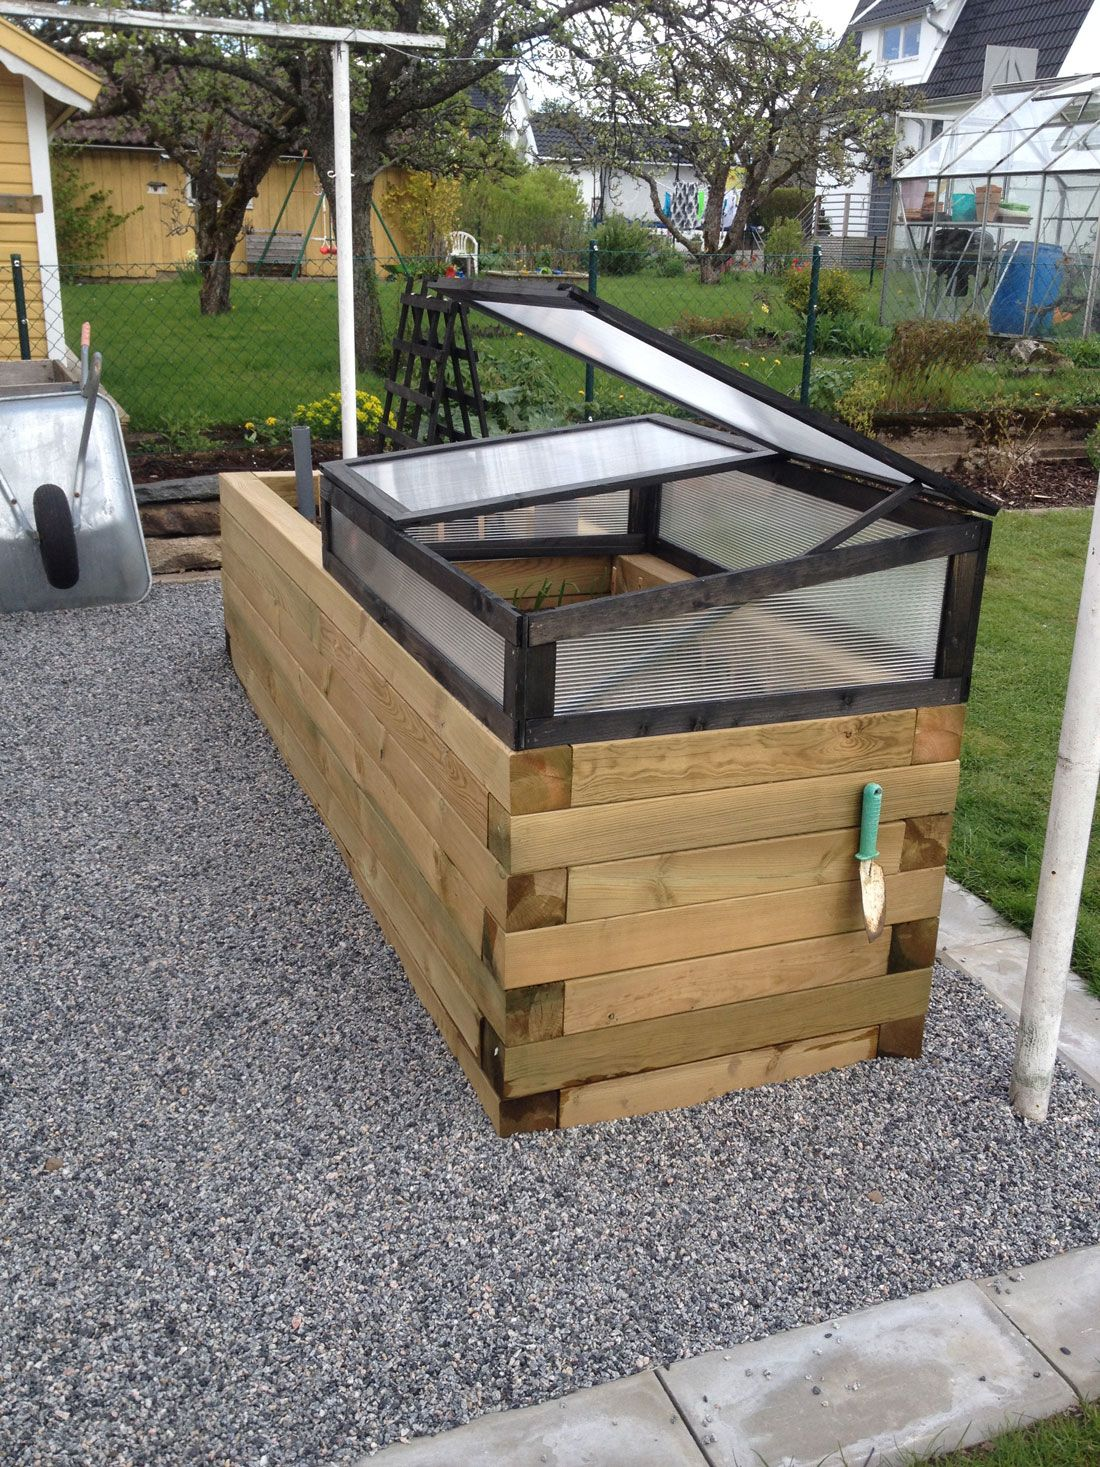 How to build a Wicking Bed Growerflow Wicking beds